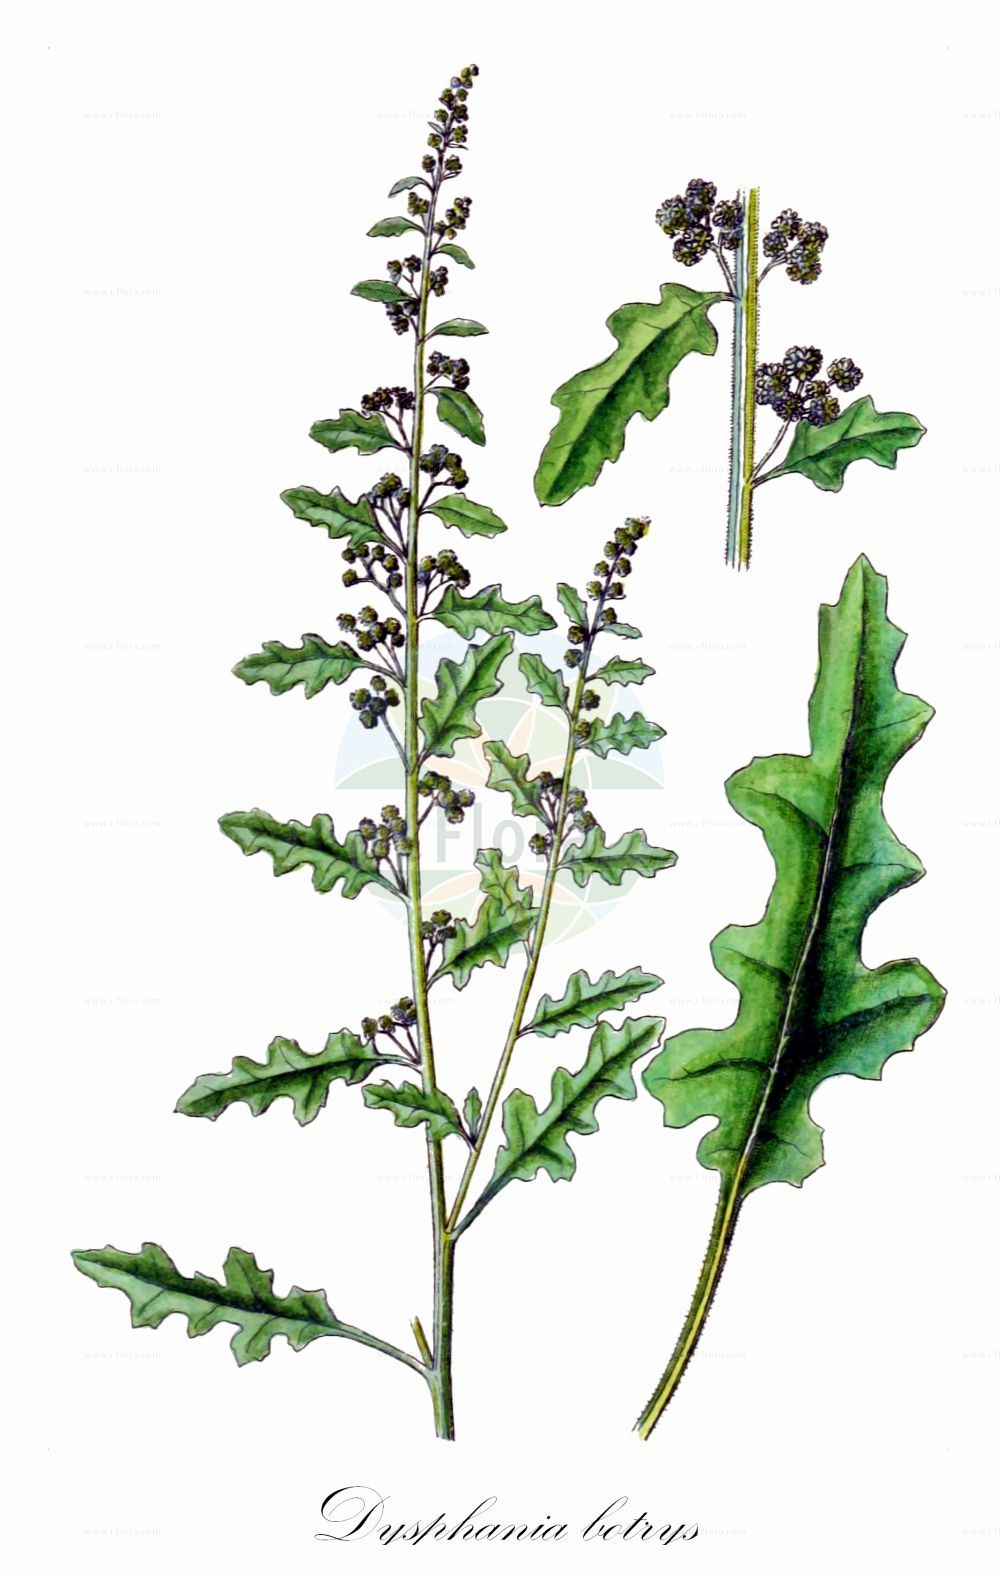 Historische Abbildung von Dysphania botrys (Klebriger Druesengaensefuss - Sticky Goosefoot). Das Bild zeigt Blatt, Bluete, Frucht und Same. ---- Historical Drawing of Dysphania botrys (Klebriger Druesengaensefuss - Sticky Goosefoot).The image is showing leaf, flower, fruit and seed.(Dysphania botrys,Klebriger Druesengaensefuss,Sticky Goosefoot,Chenopodium botrys,,Druesen-Gaensefuss,Klebriger Gaensefuss,Jerusalem-oak Goosefoot,Dysphania,Druesengaensefuss,Goosefoot,Amaranthaceae,Fuchsschwanzgewaechse,Pigweed family,Blatt,Bluete,Frucht,Same,leaf,flower,fruit,seed,Sturm (1796f))